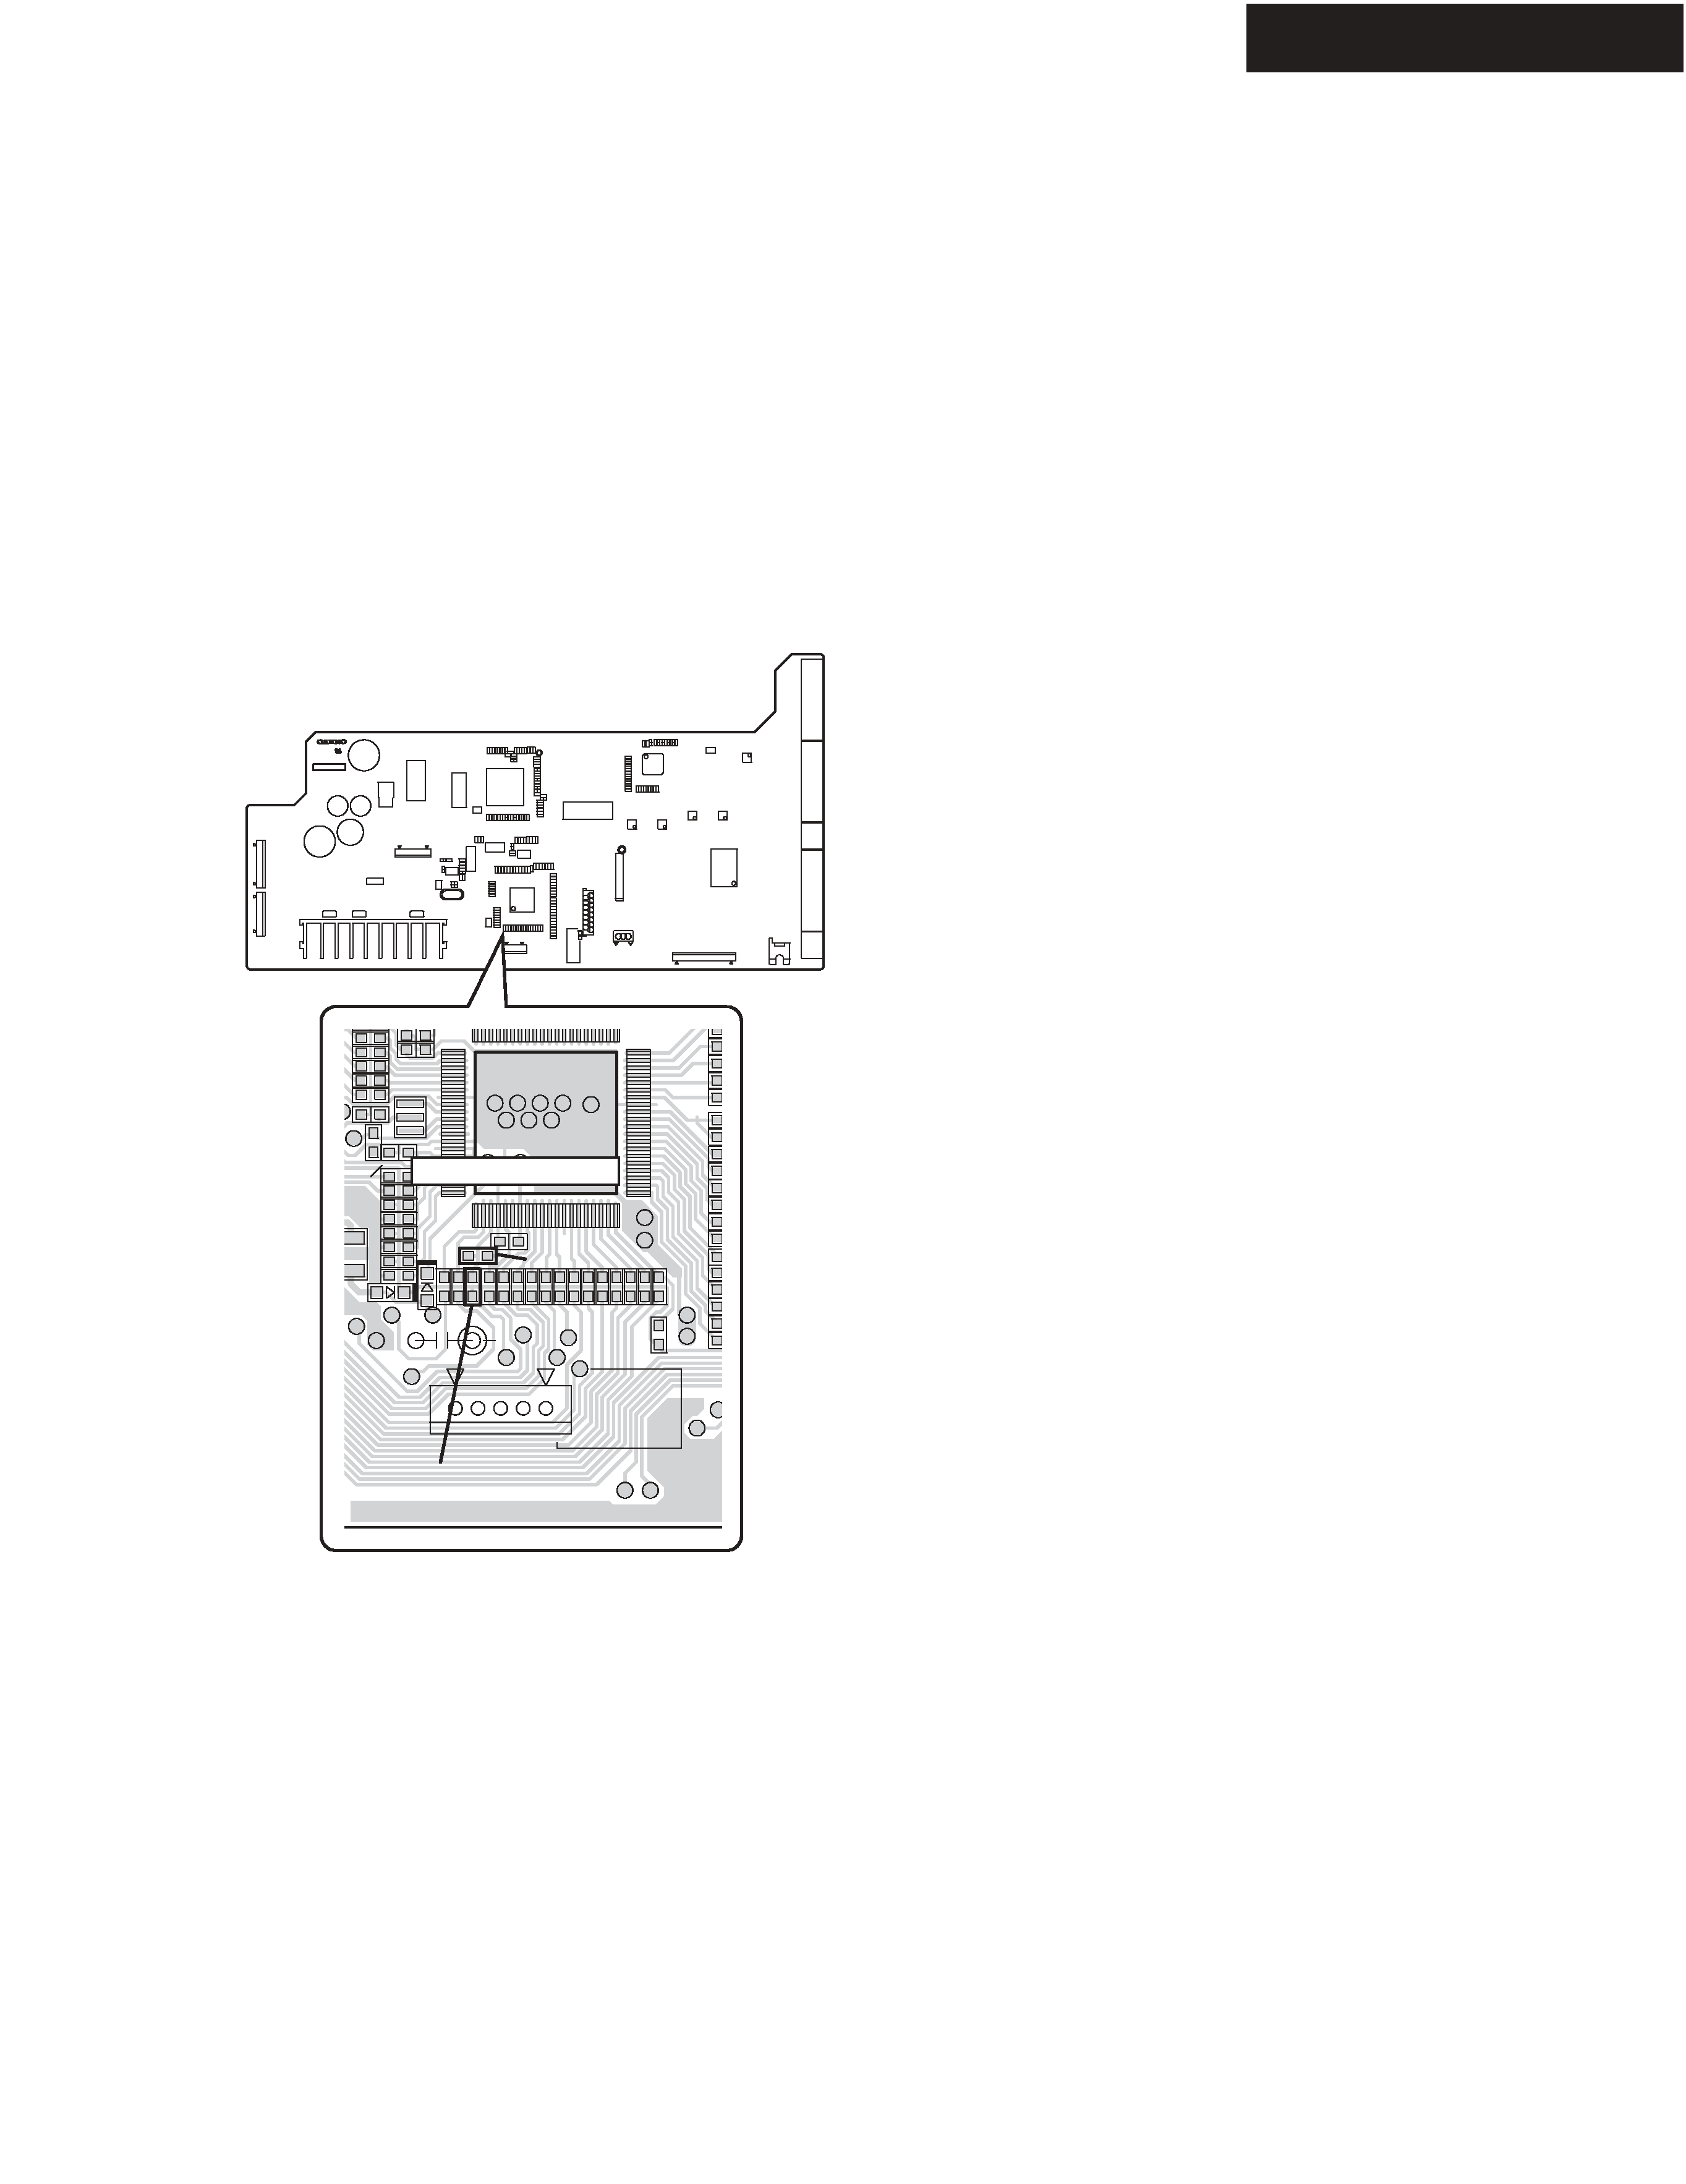 Service Manual For Onkyo Ht-r520